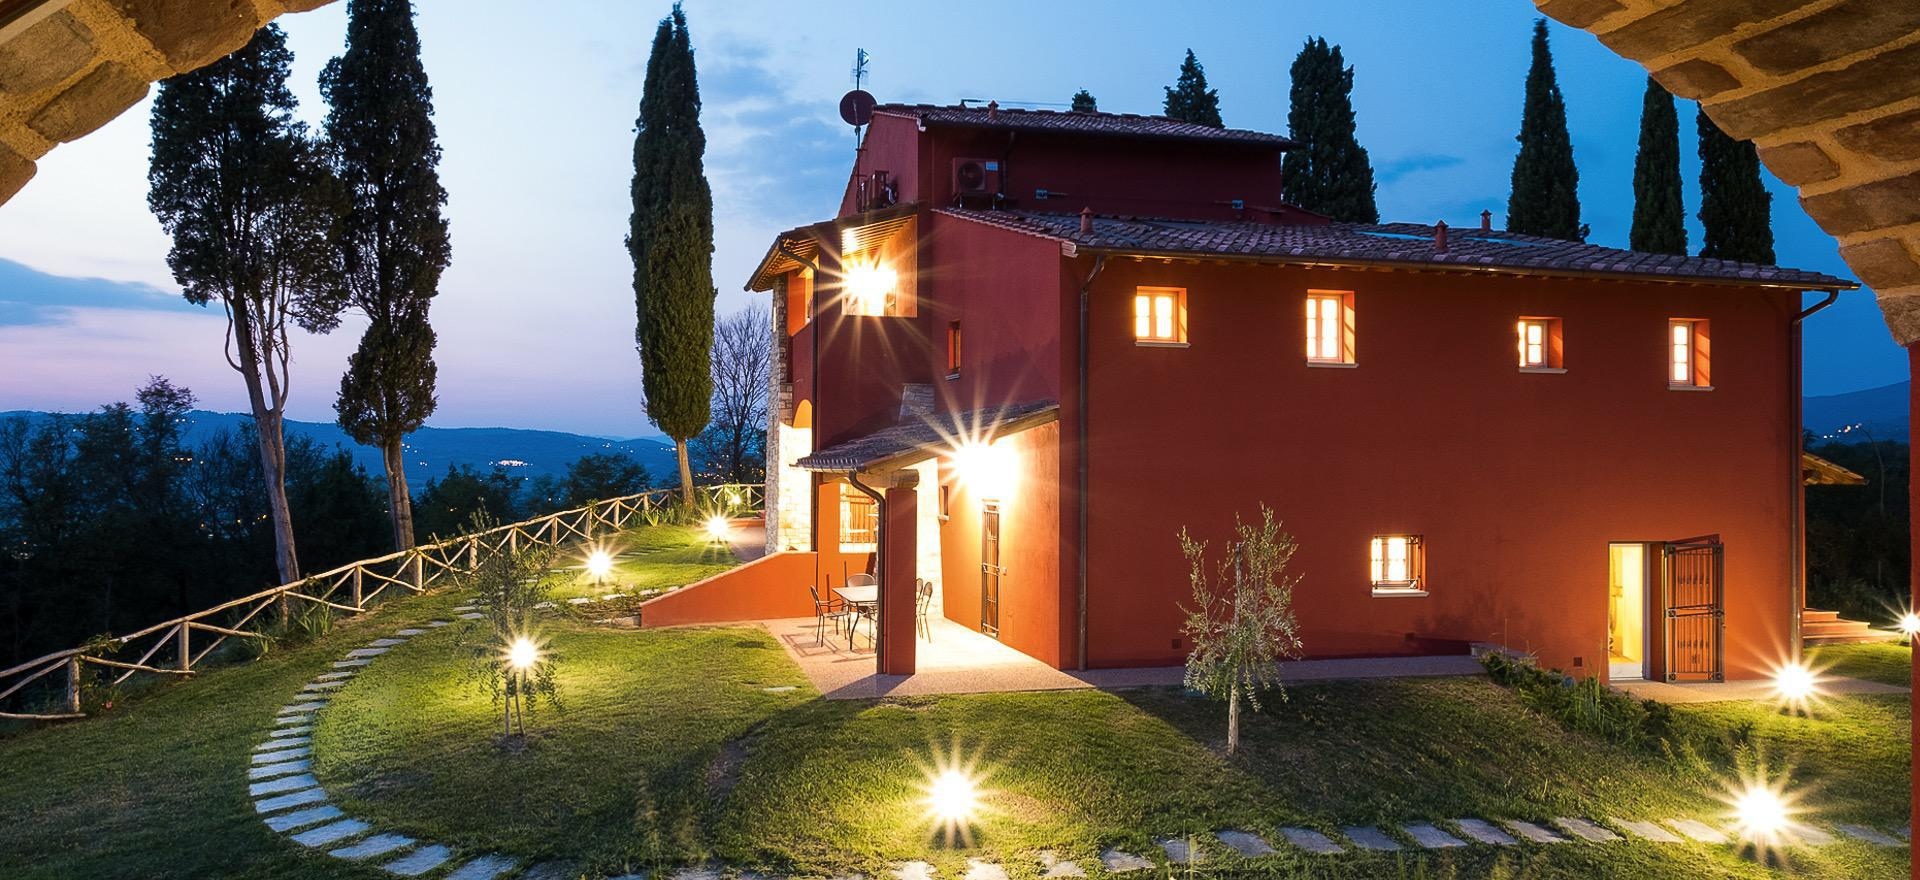 Agriturismo met design interieur in Toscane